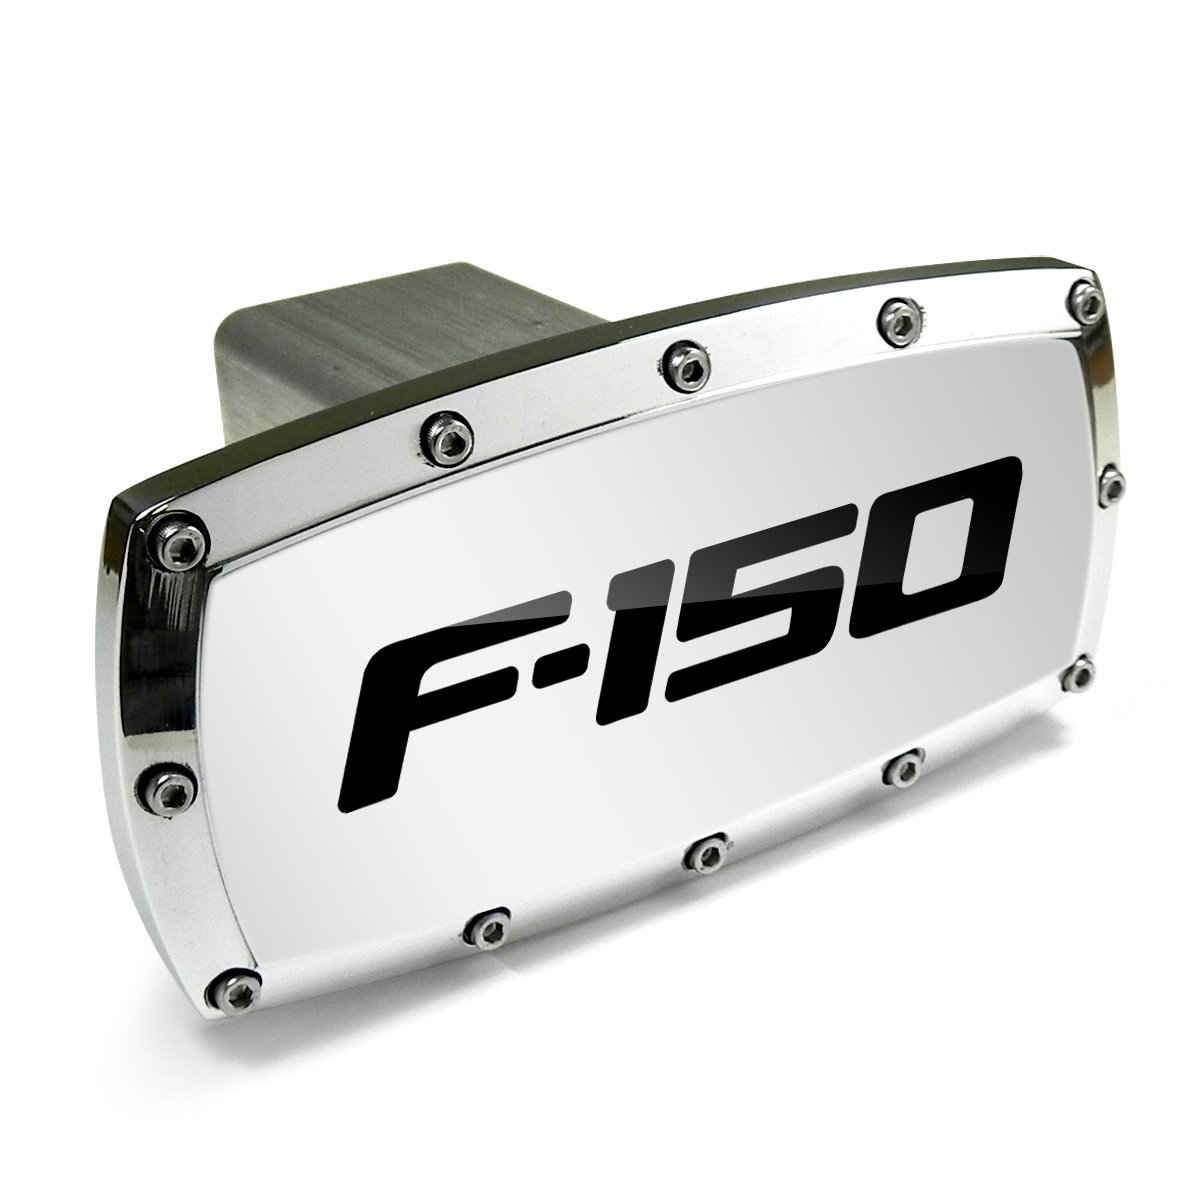 Ford F-150 Billet Aluminum Tow Hitch Cover Elite